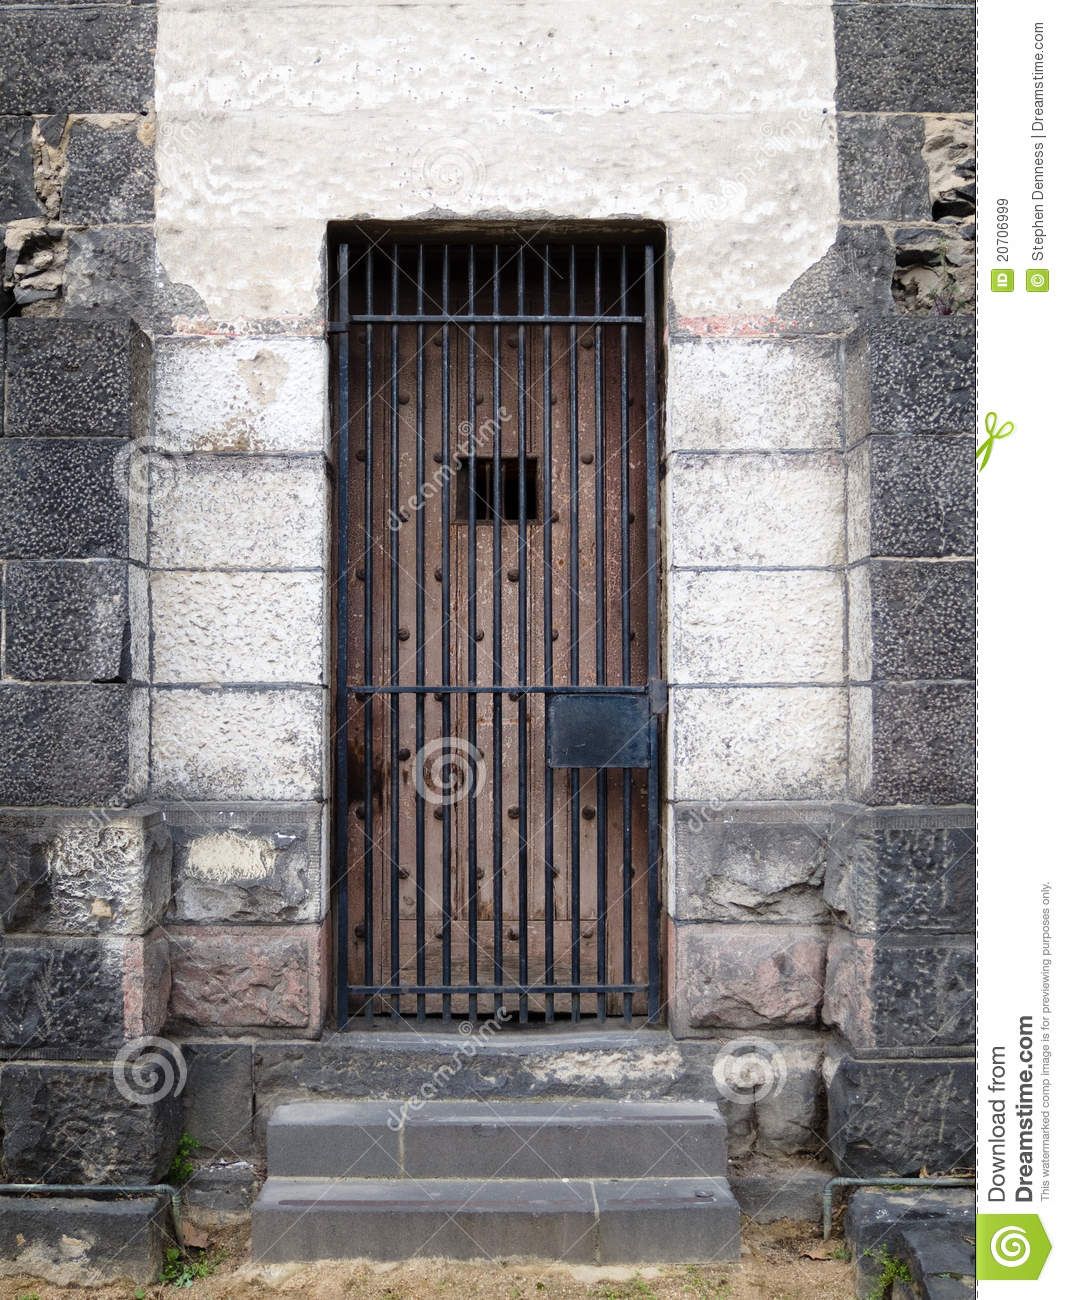 Old Stone Jail Wooden Door With Iron Bars Royalty Free Stock Images ...